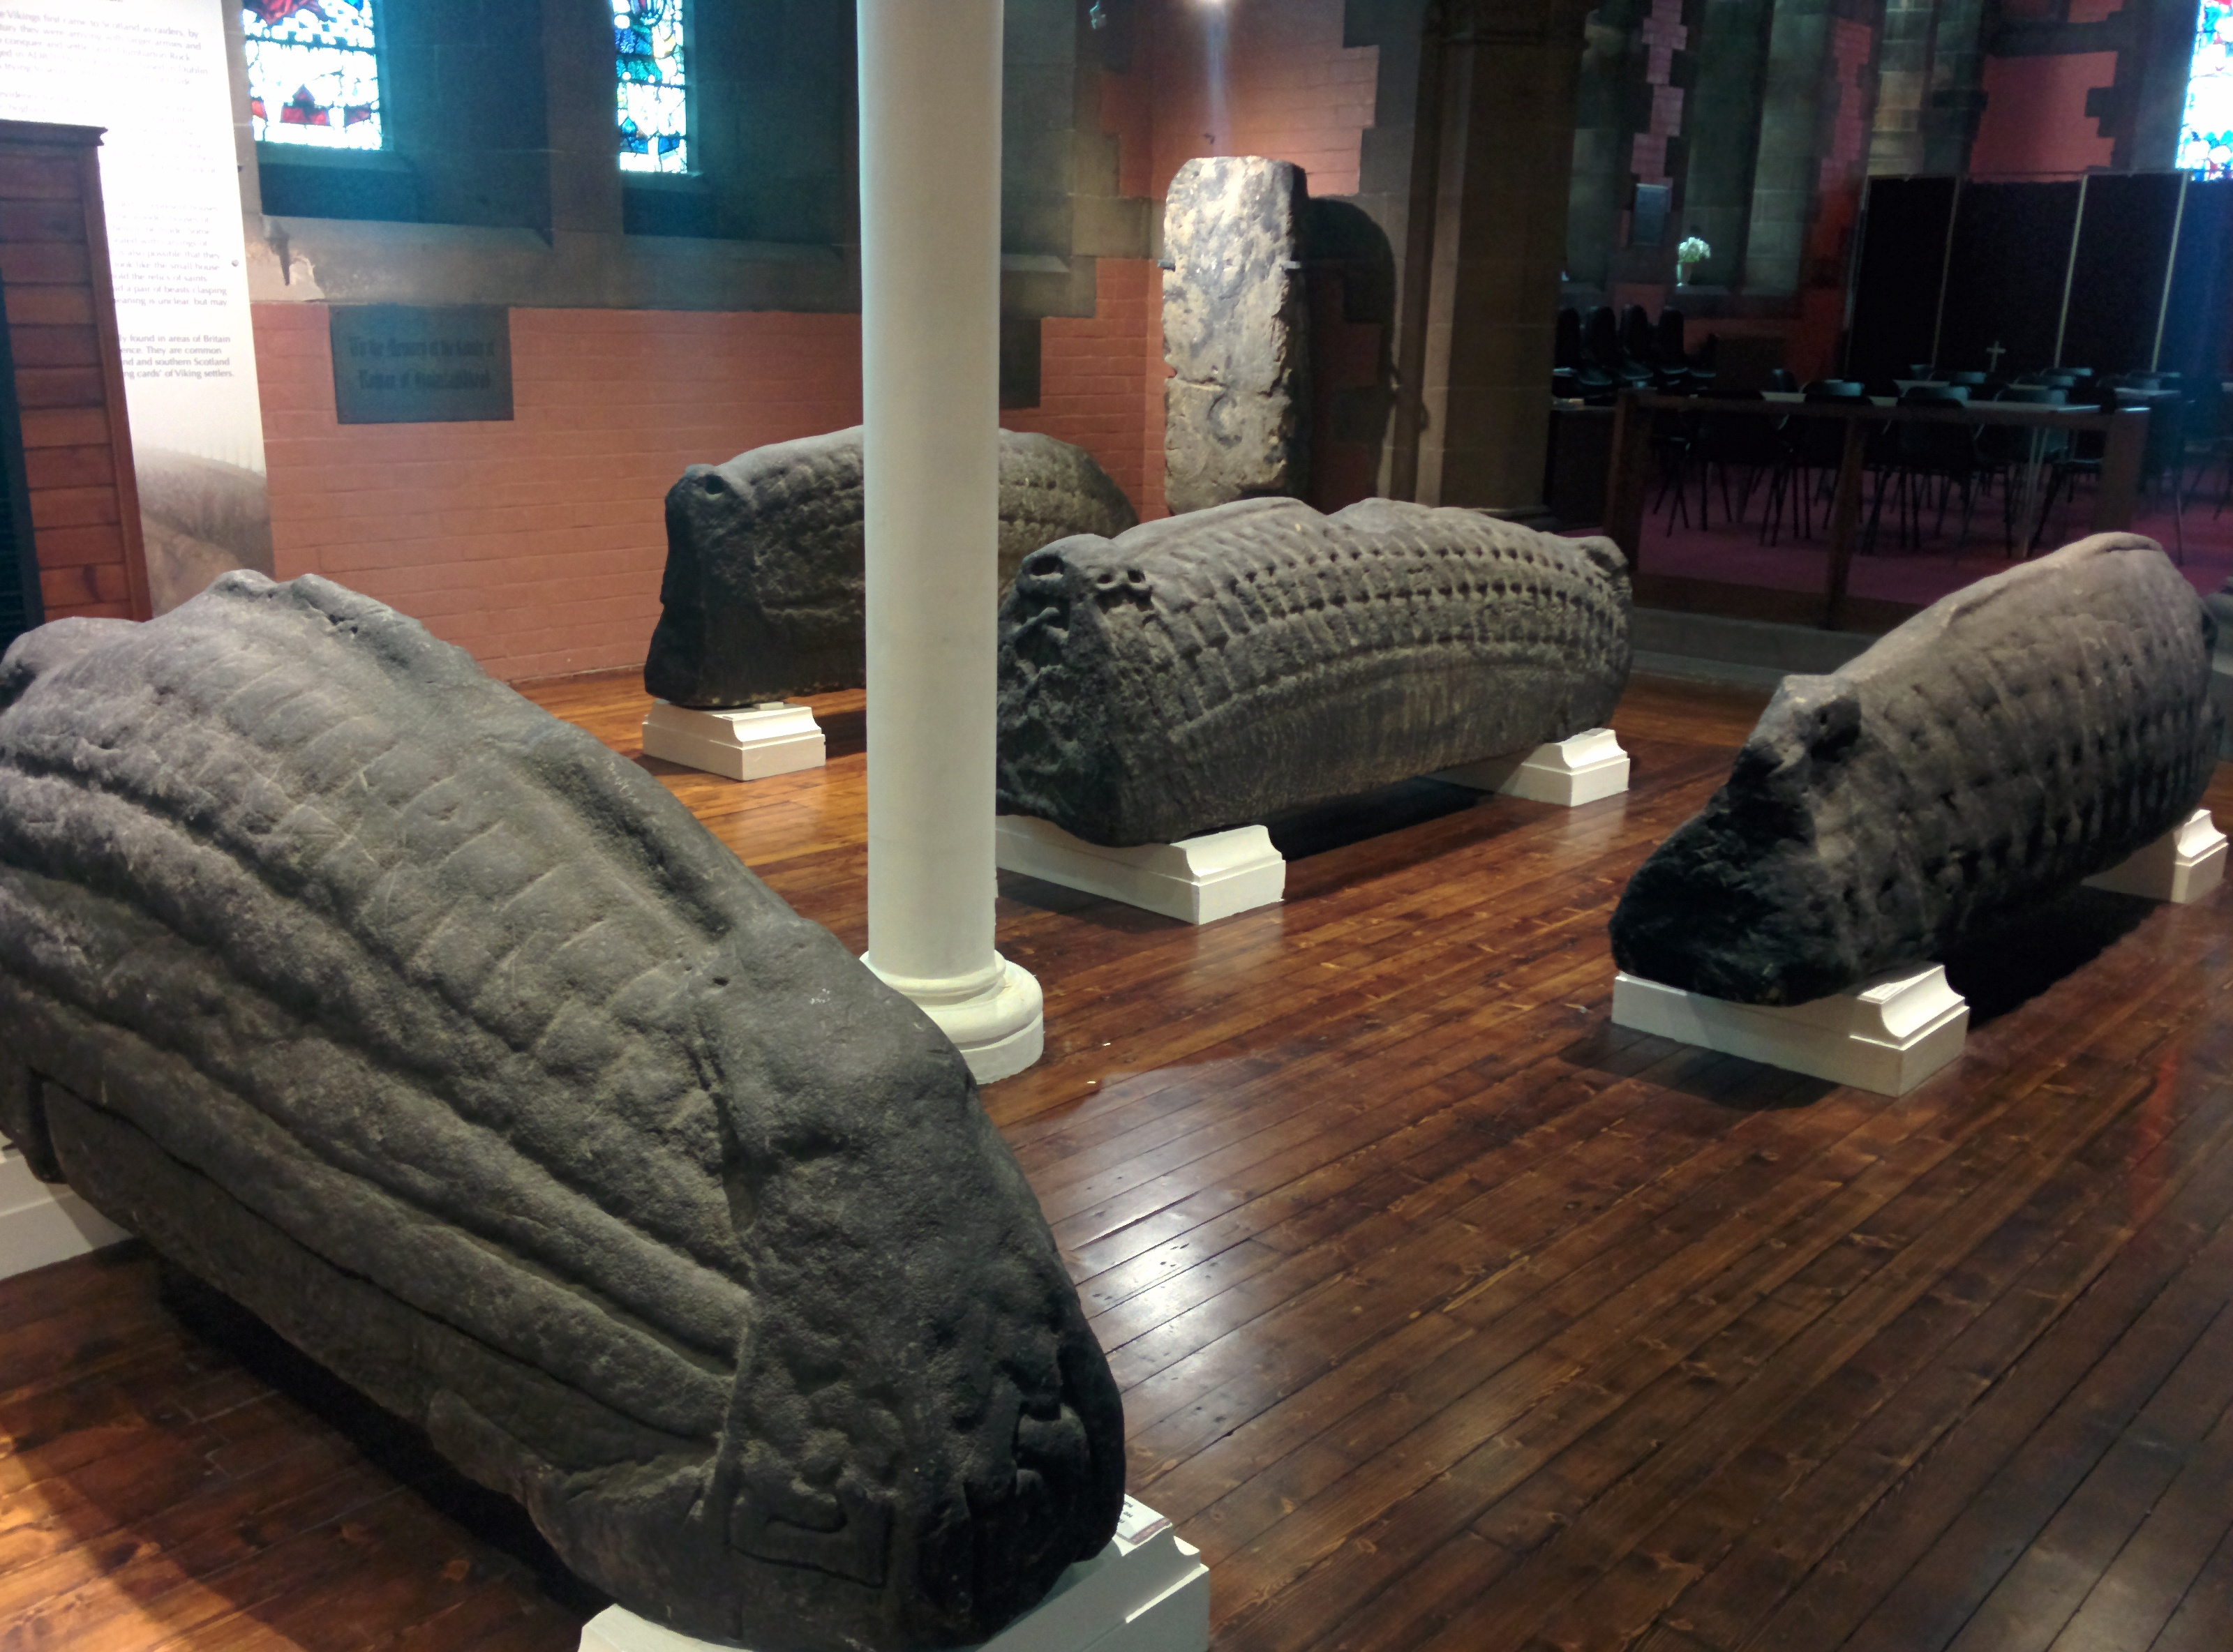 Goven Stones, Things to do in Glasgow